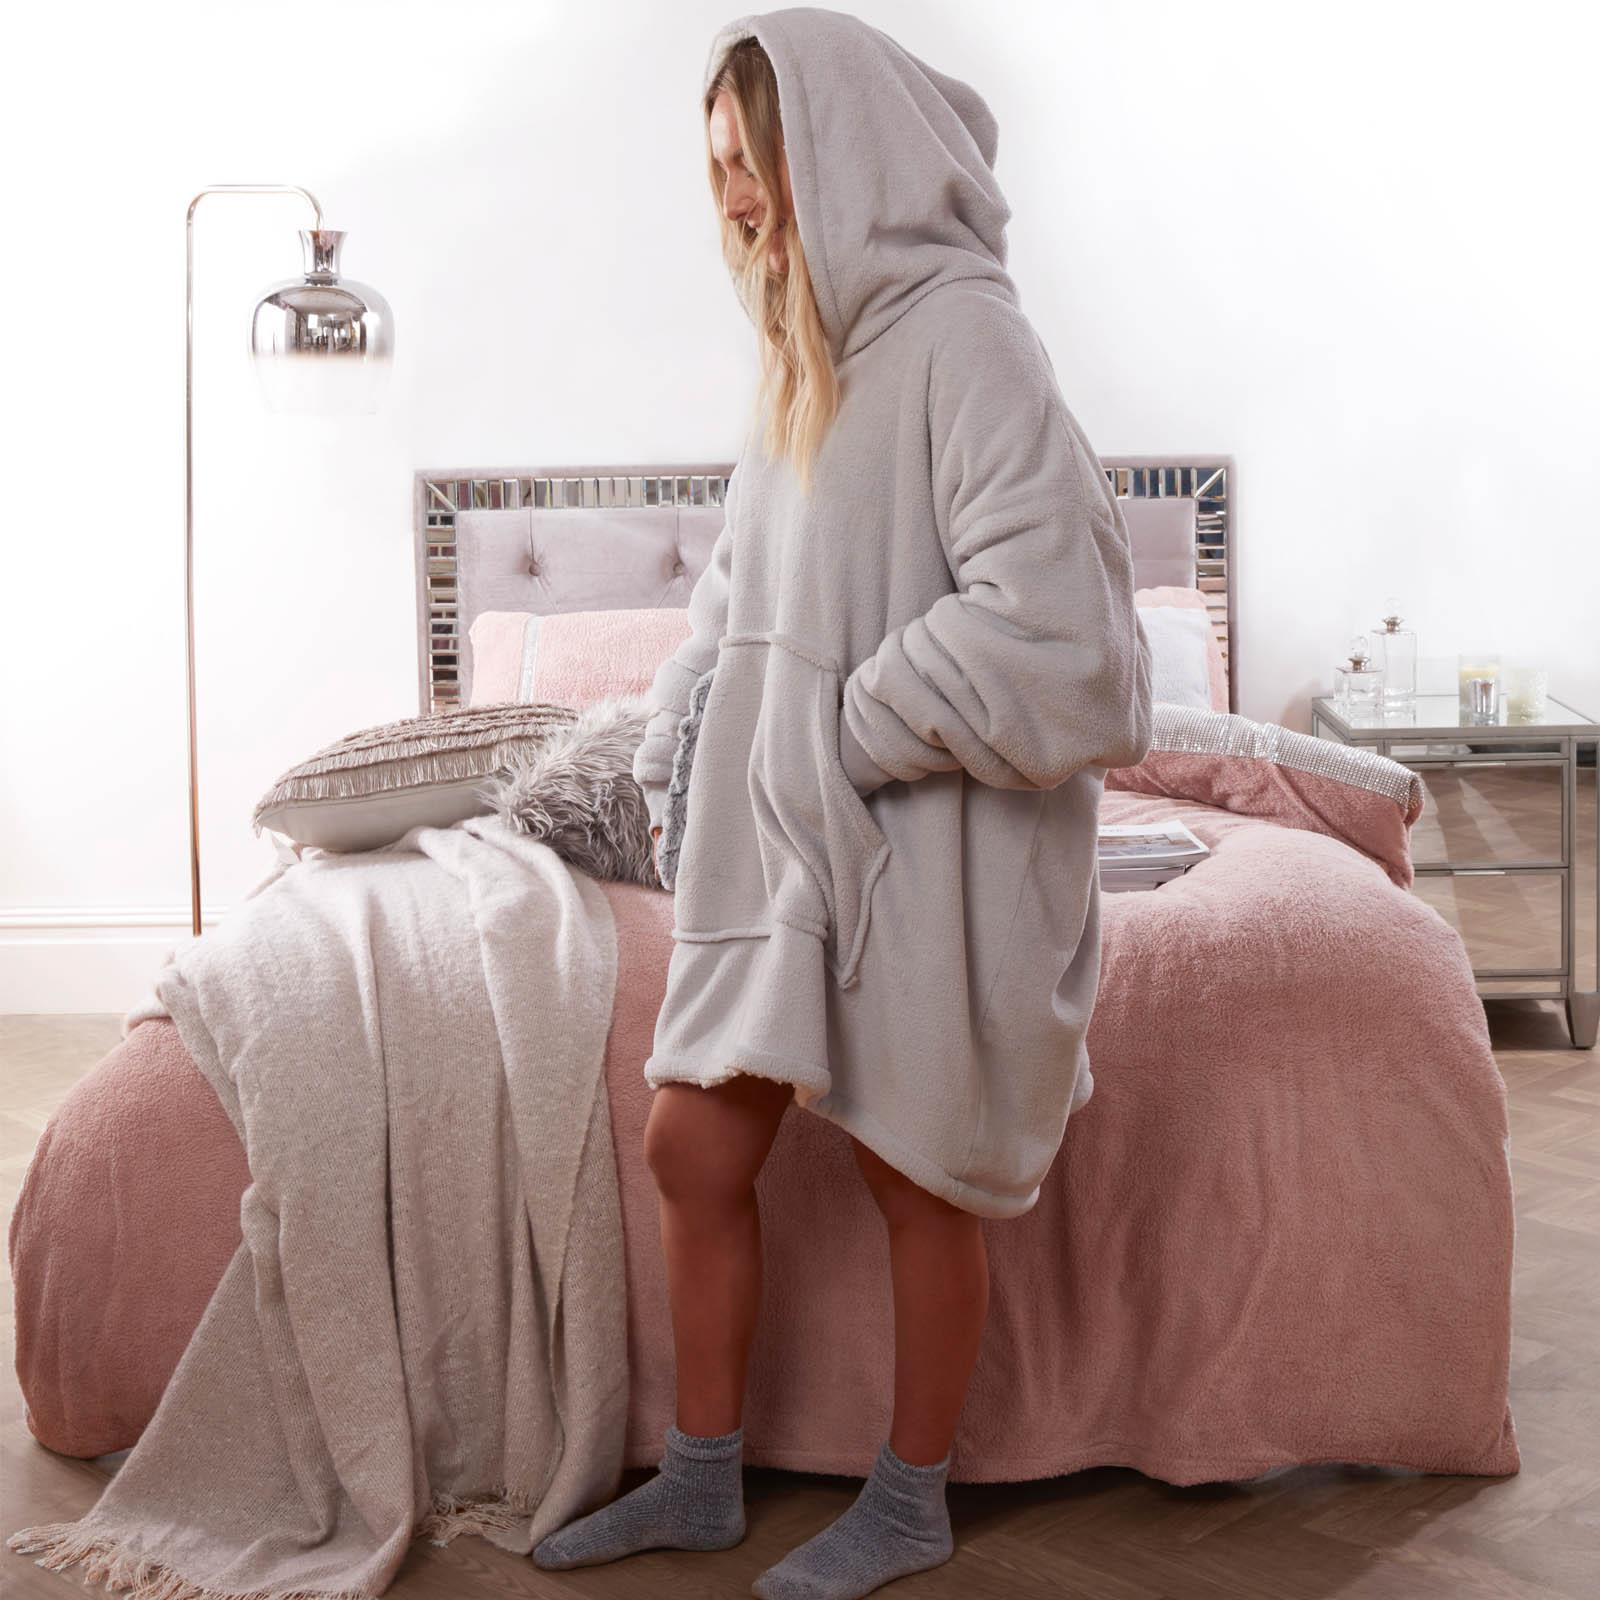 Sienna-Hoodie-Blanket-Oversized-Ultra-Plush-Sherpa-Giant-Big-Hooded-Sweatshirt thumbnail 20